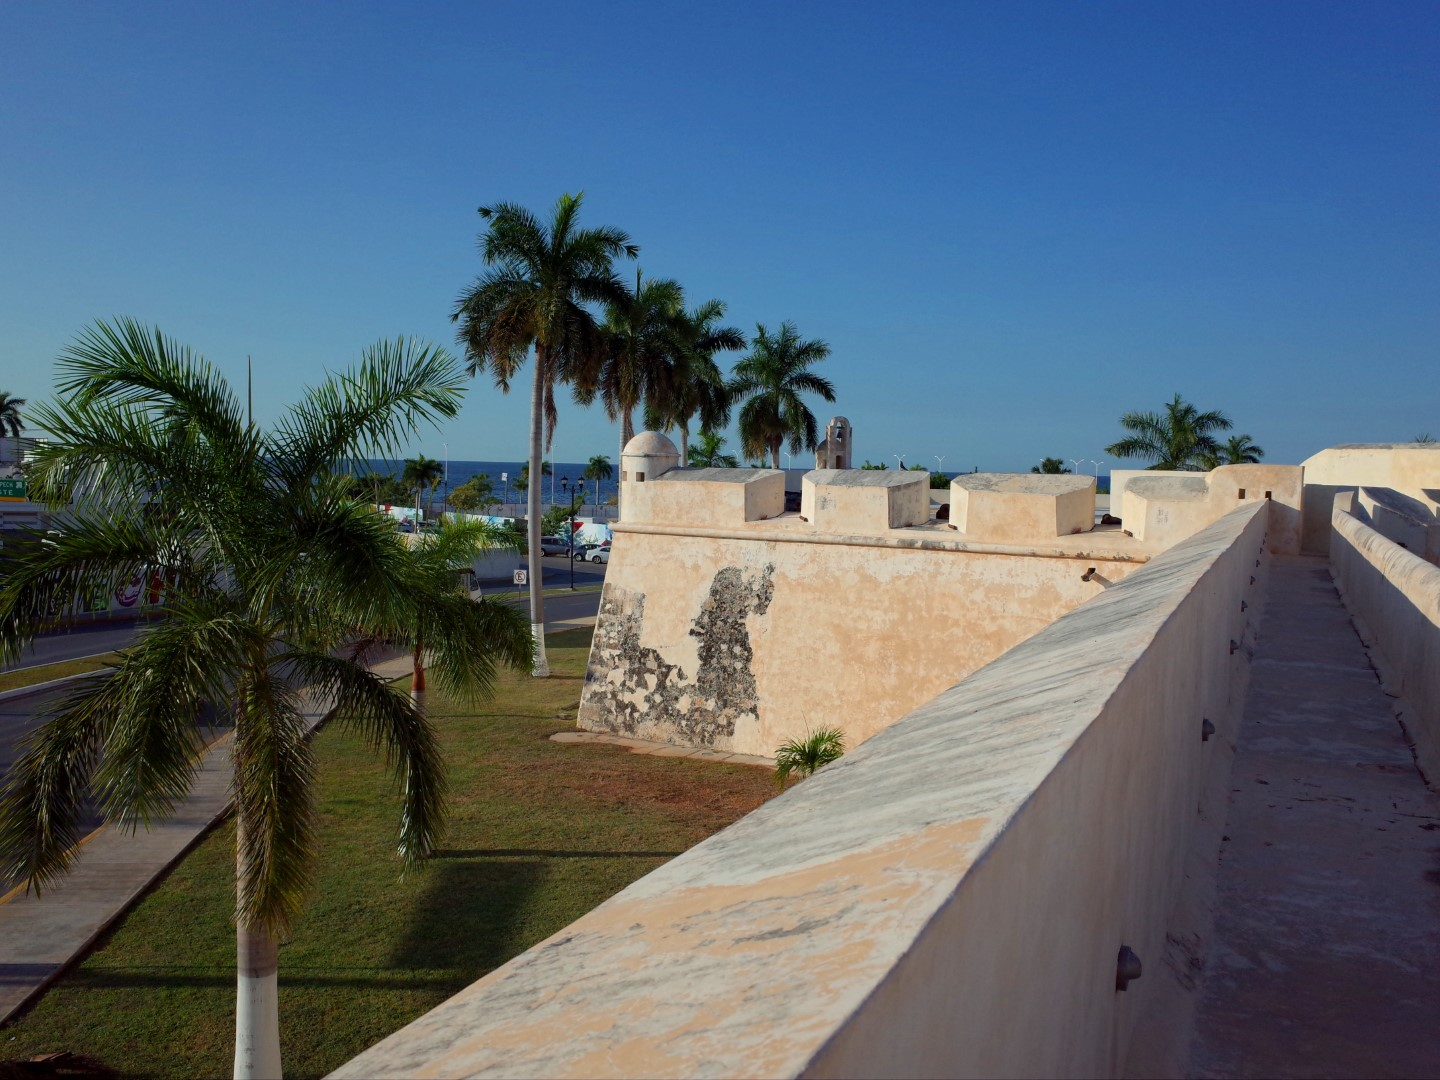 Old city wall in Campeche Mexico